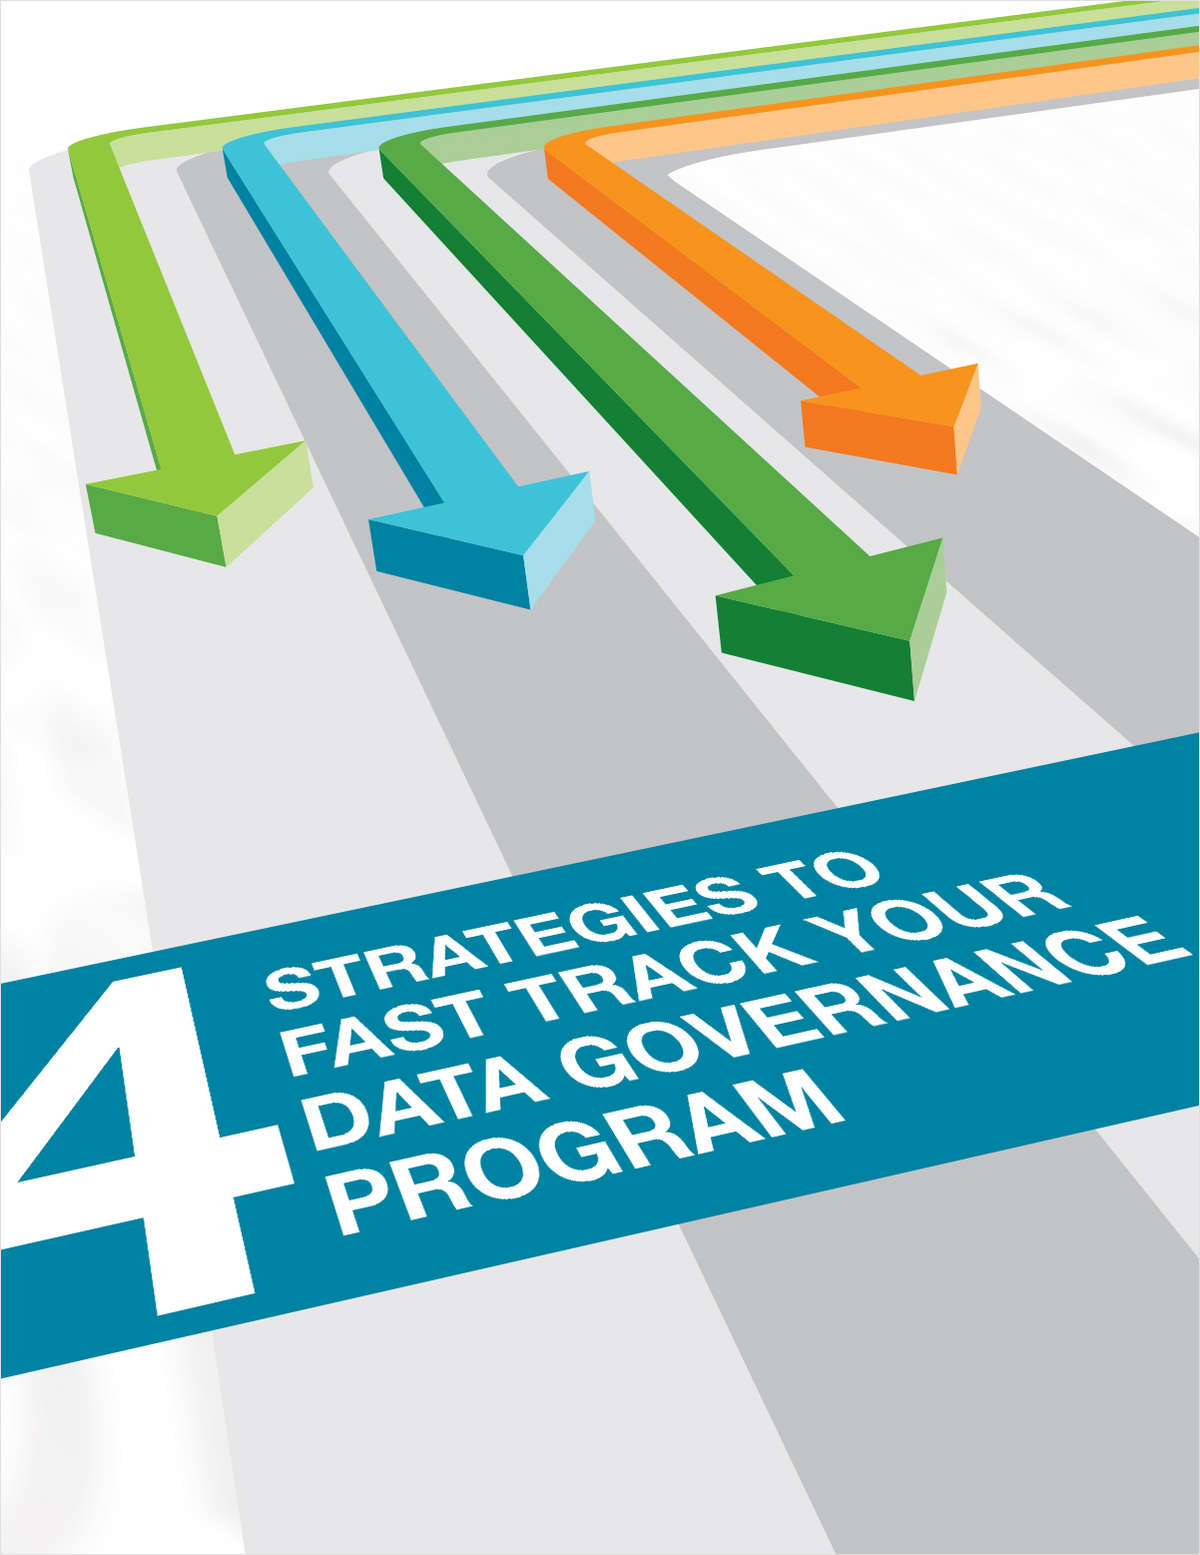 4 Strategies to Fast Track Your Data Governance Program